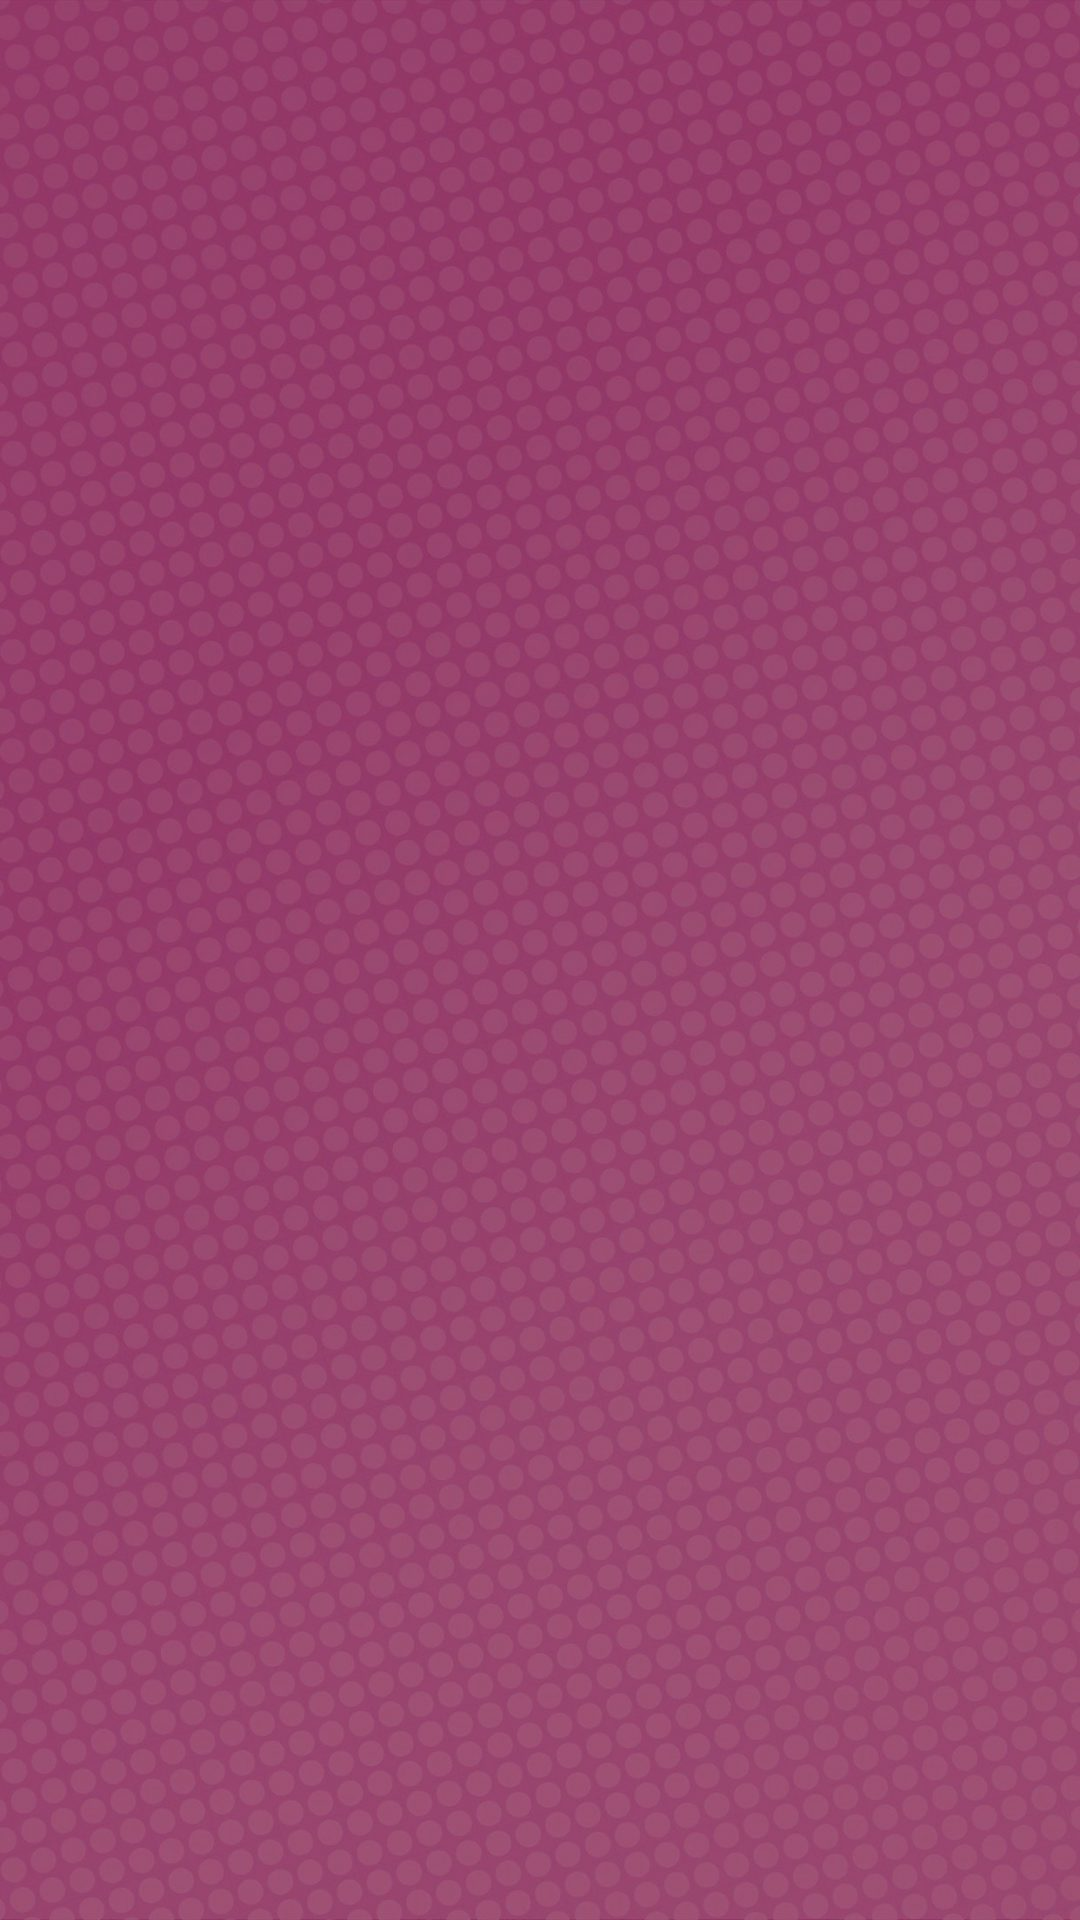 Dots Red Violet Abstract Pattern